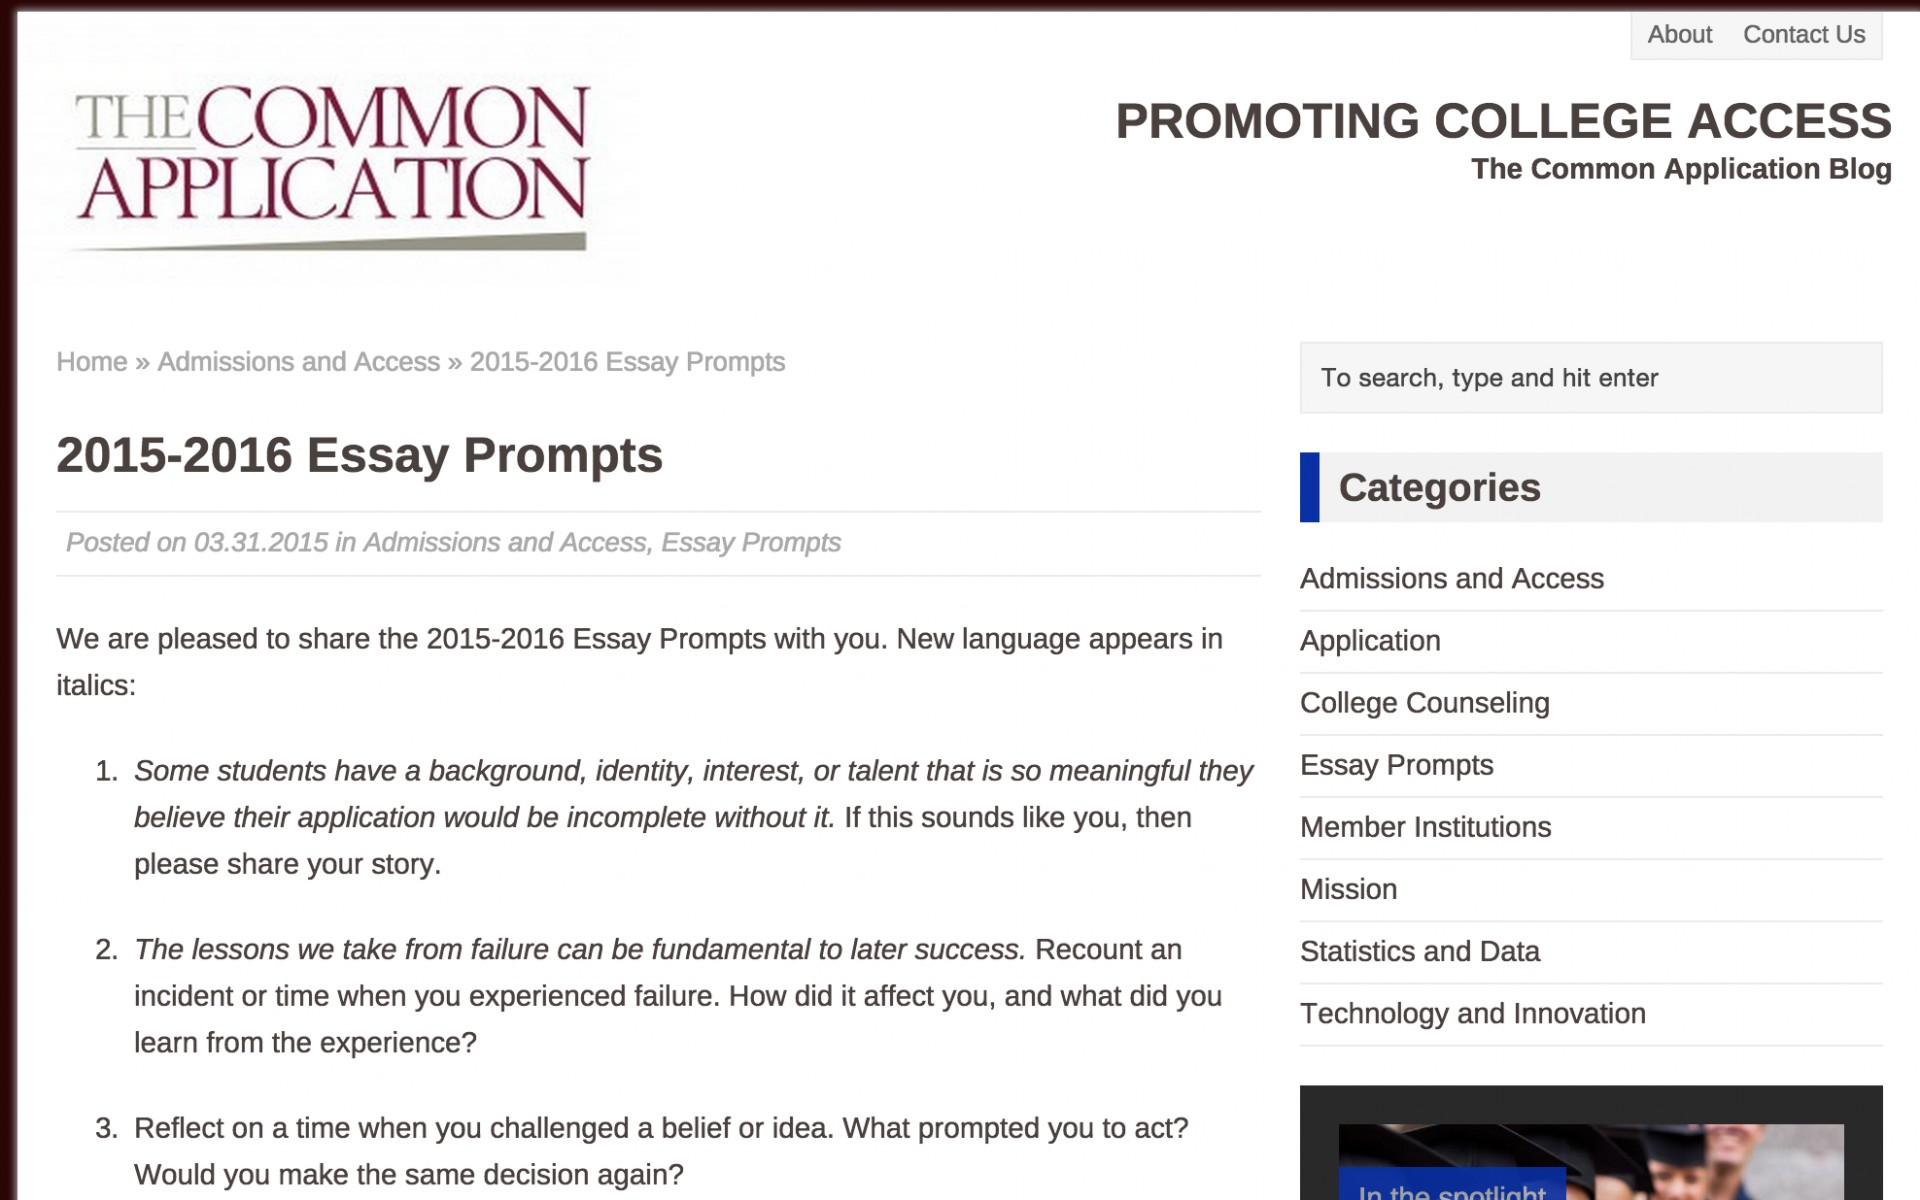 002 Common App Essay Topics Screen Shot At Pm Impressive Samples Topic 1 Ideas 2017 1920